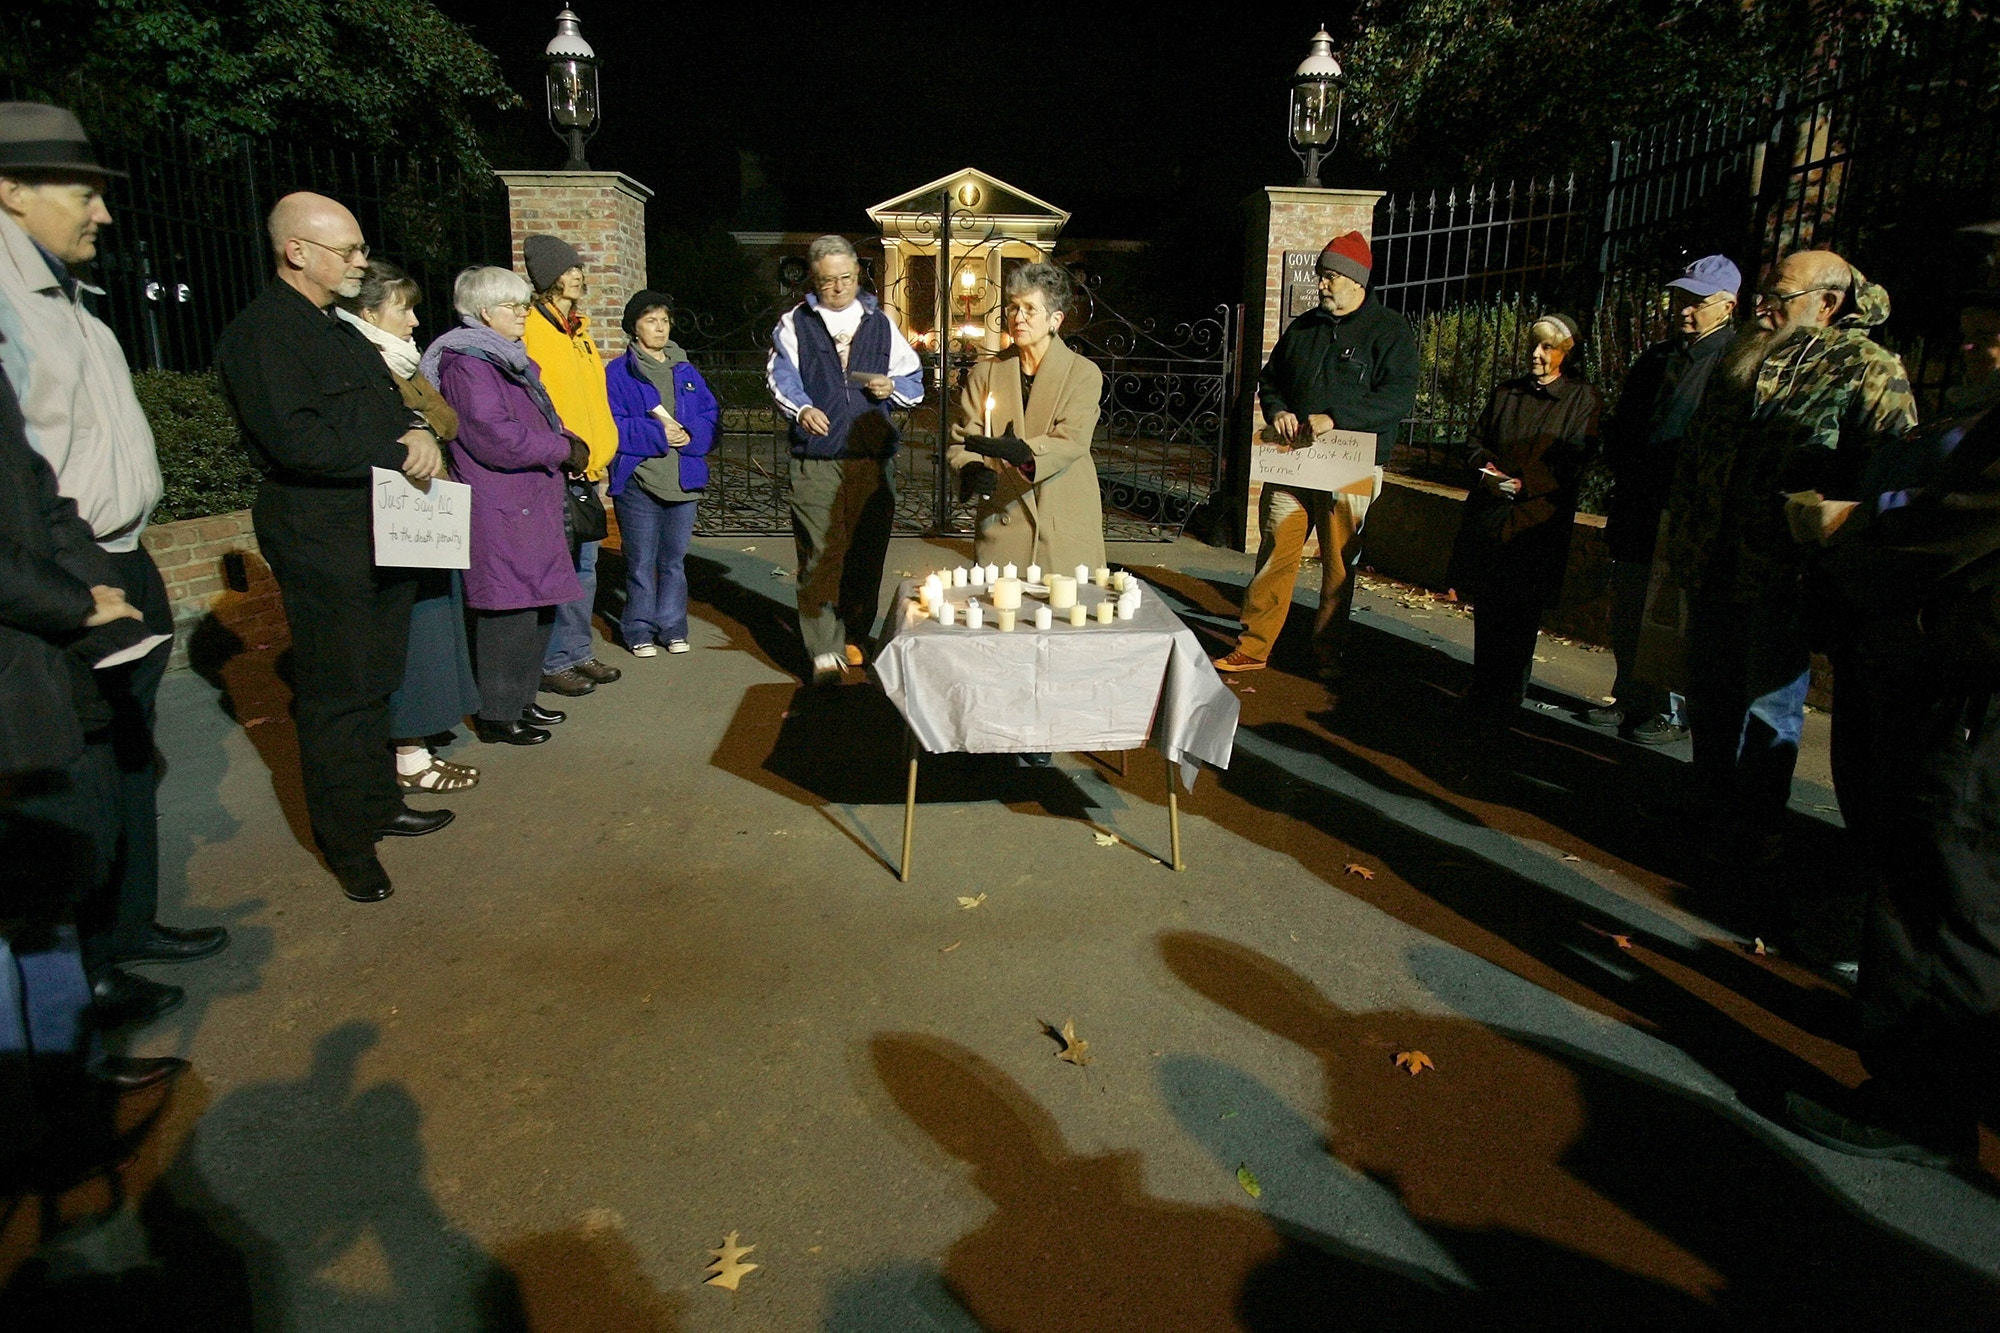 More than 30 death penalty protestors gather in front of the Arkansas Governor's Mansion as Arkansas Coalition to Abolish the Death Penalty board member Freddie Nixon, center, prepares to light candles late Monday, Nov. 28, 2005, in Little Rock, Ark. The group met to protest the scheduled execution of condemned killer Eric Nance. The U.S. Supreme Court delayed the scheduled execution of condemned killer Eric Nance to give Justice Clarence Thomas more time to review the case. (AP Photo/Danny Johnston)